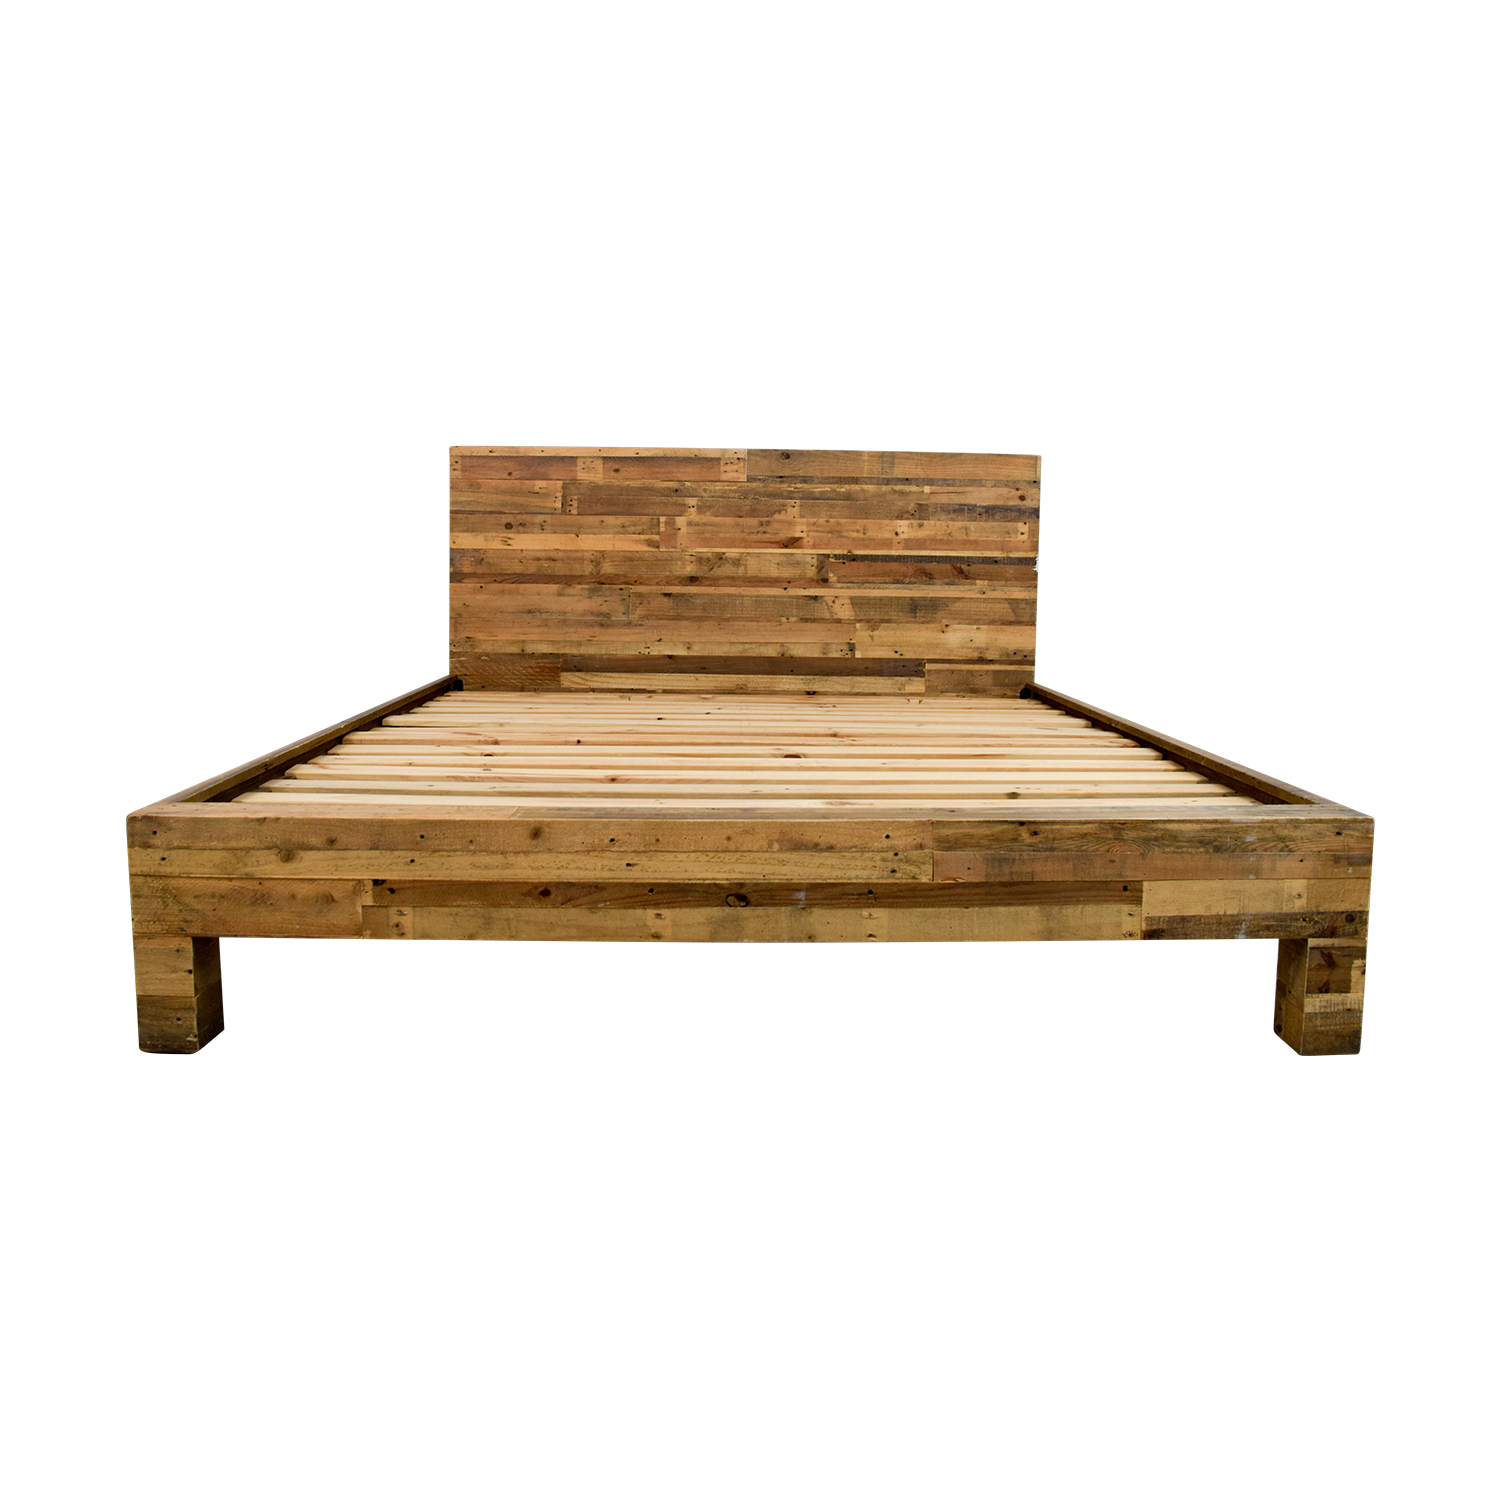 West Elm West Elm Emmerson® Reclaimed Natural Wood King Bed dimensions